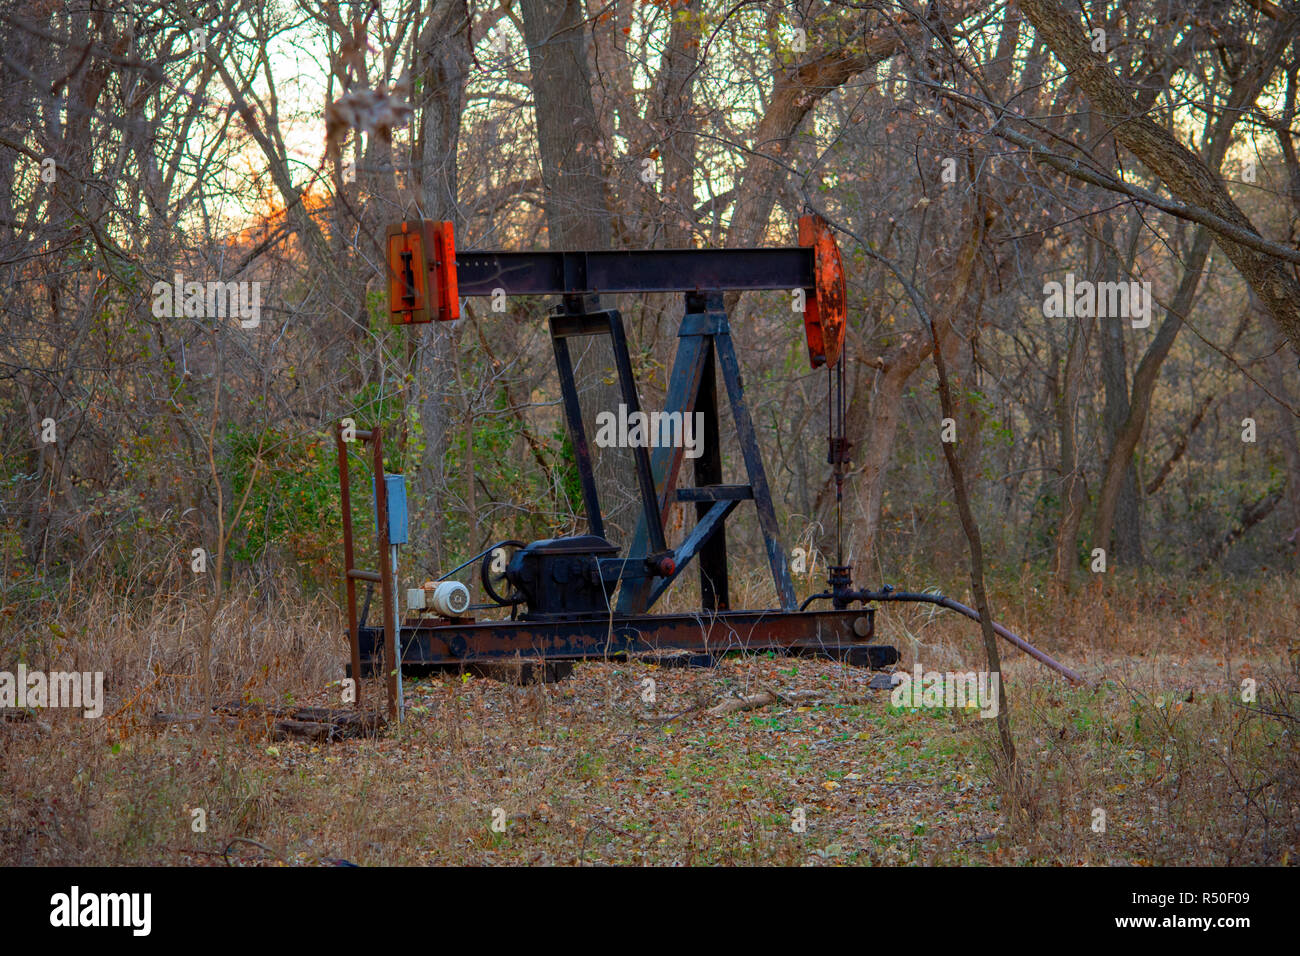 Oil Well Pump Jack Stock Photos & Oil Well Pump Jack Stock